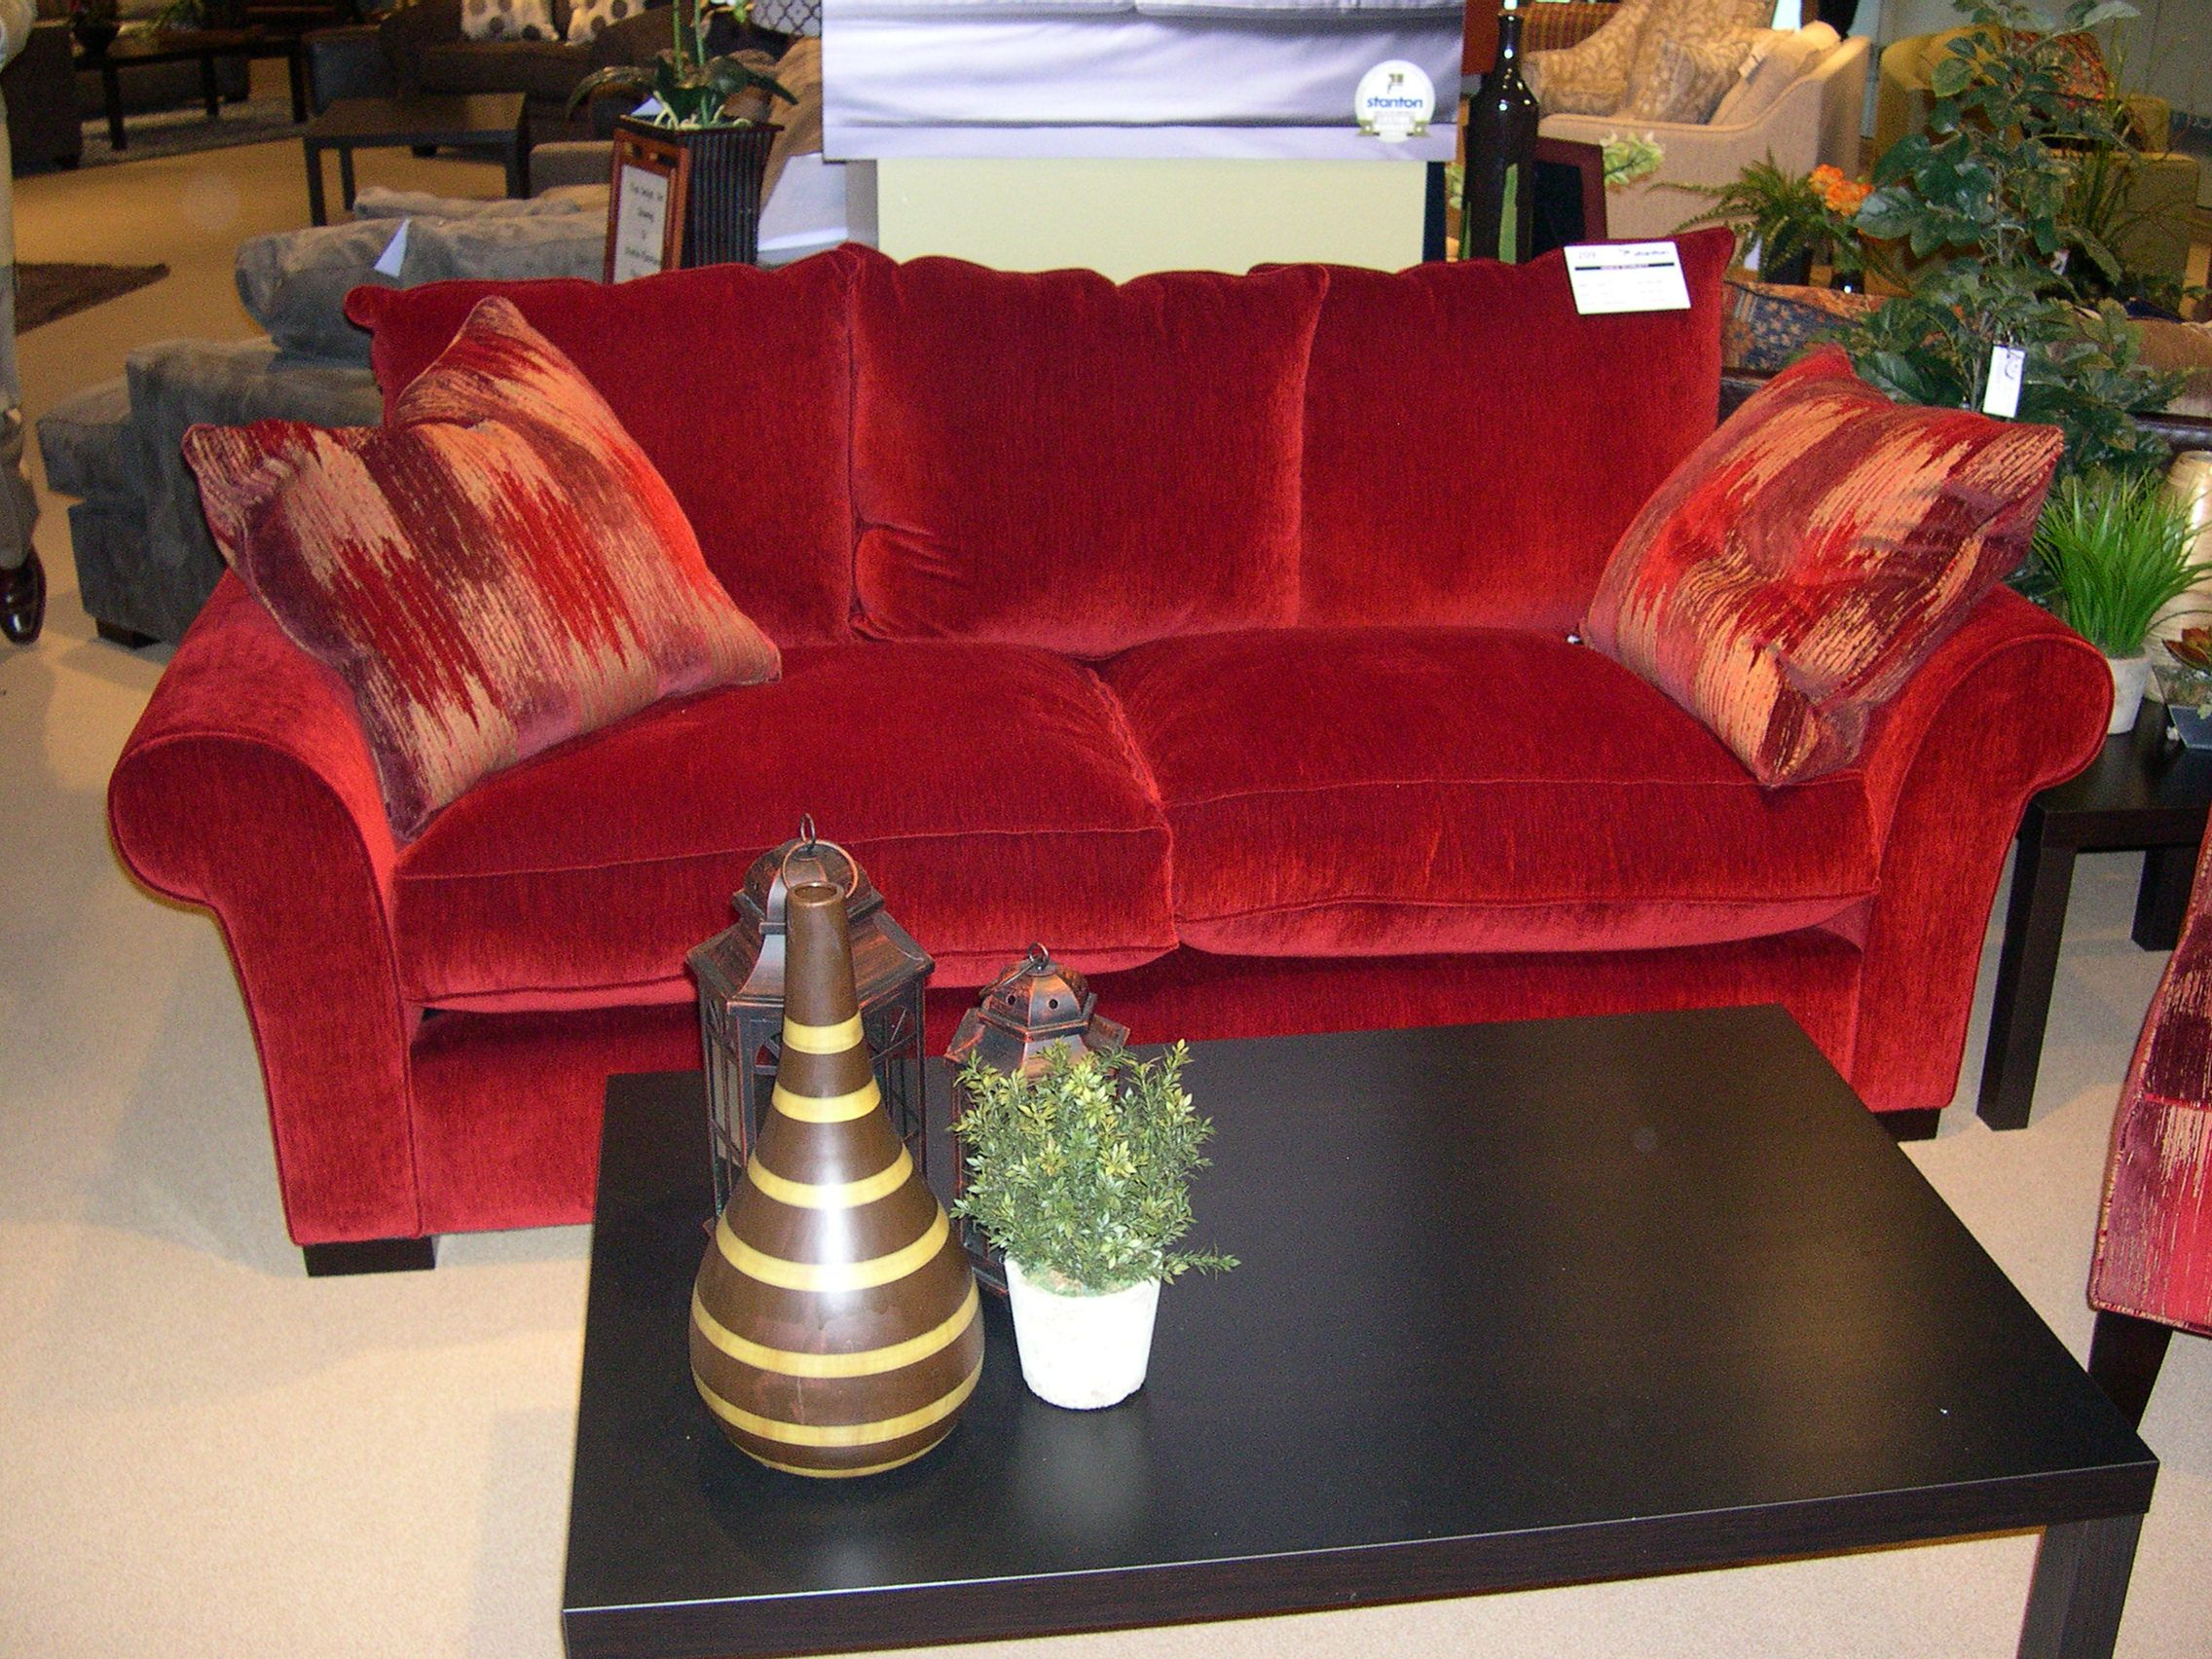 Stanton Showroom - A classic sofa in red.